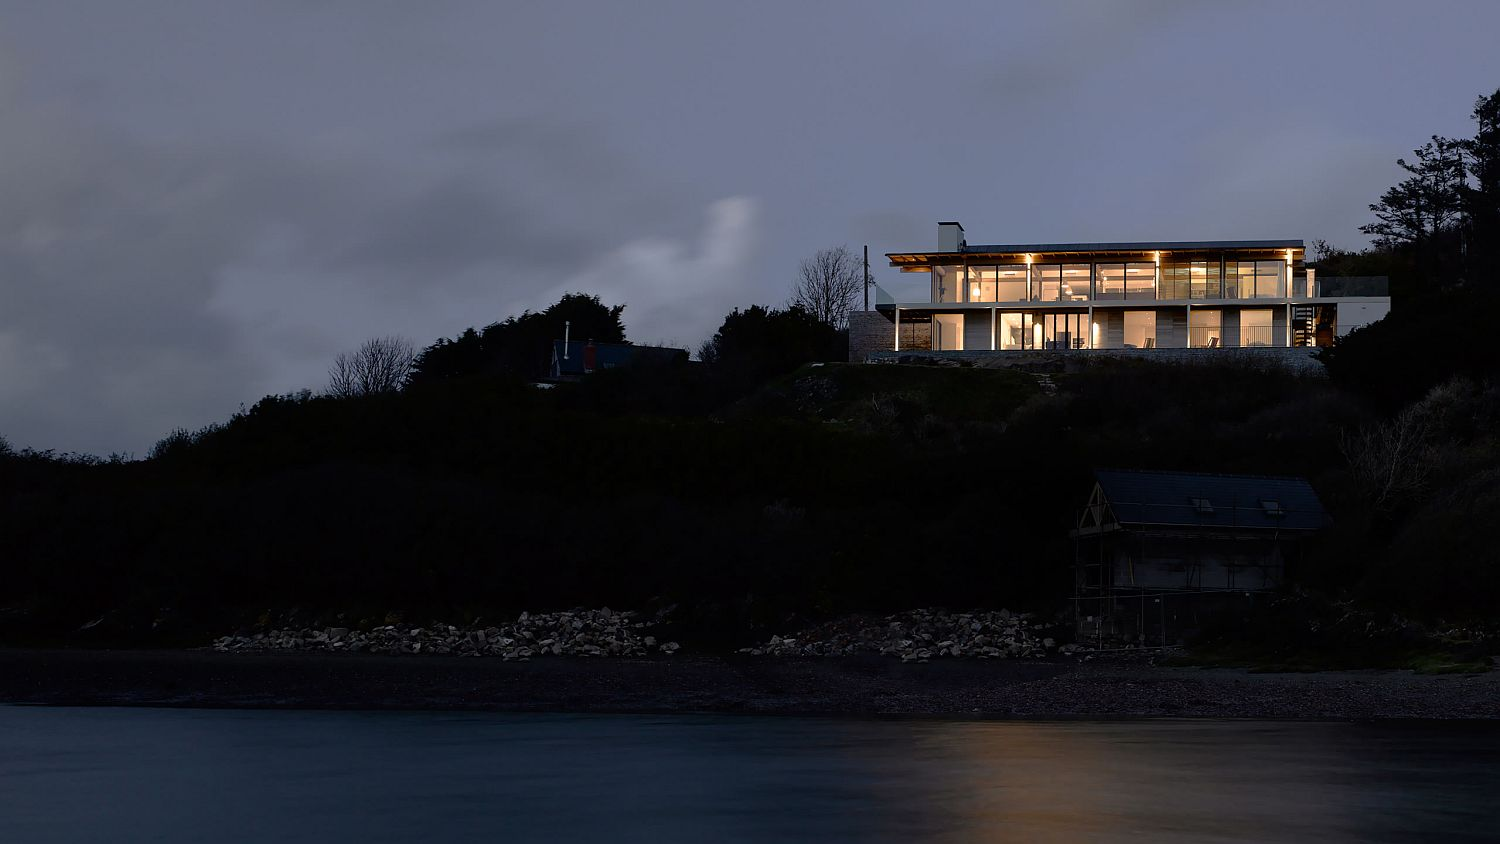 View of the Trewarren House after sunset